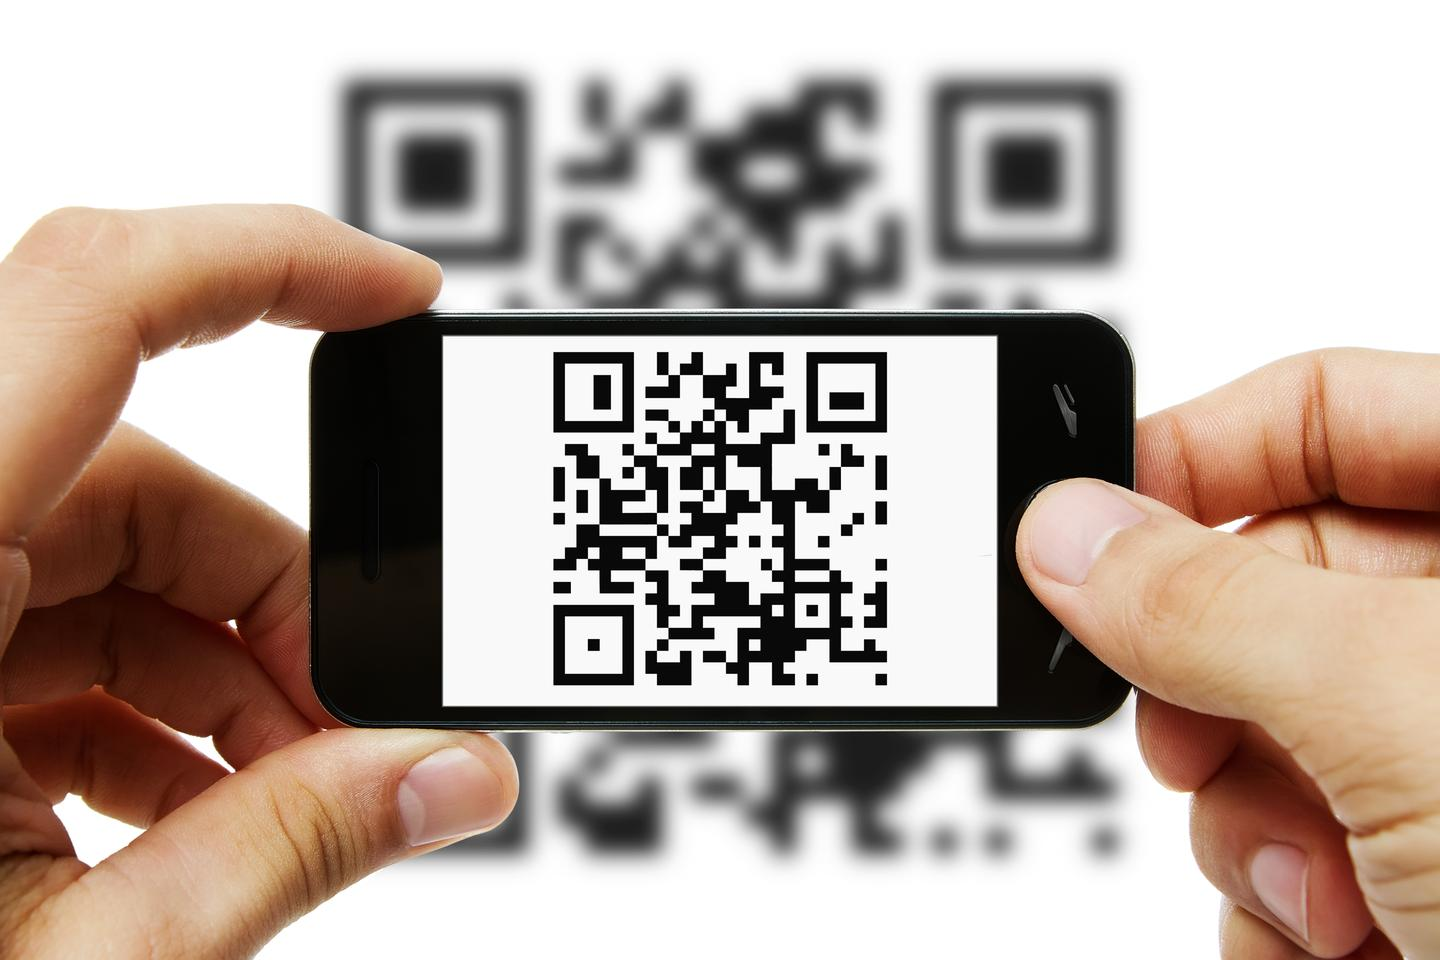 Using a smartphone, users could scan QR codes to see encrypted 3D images (Photo: Shutterstock)